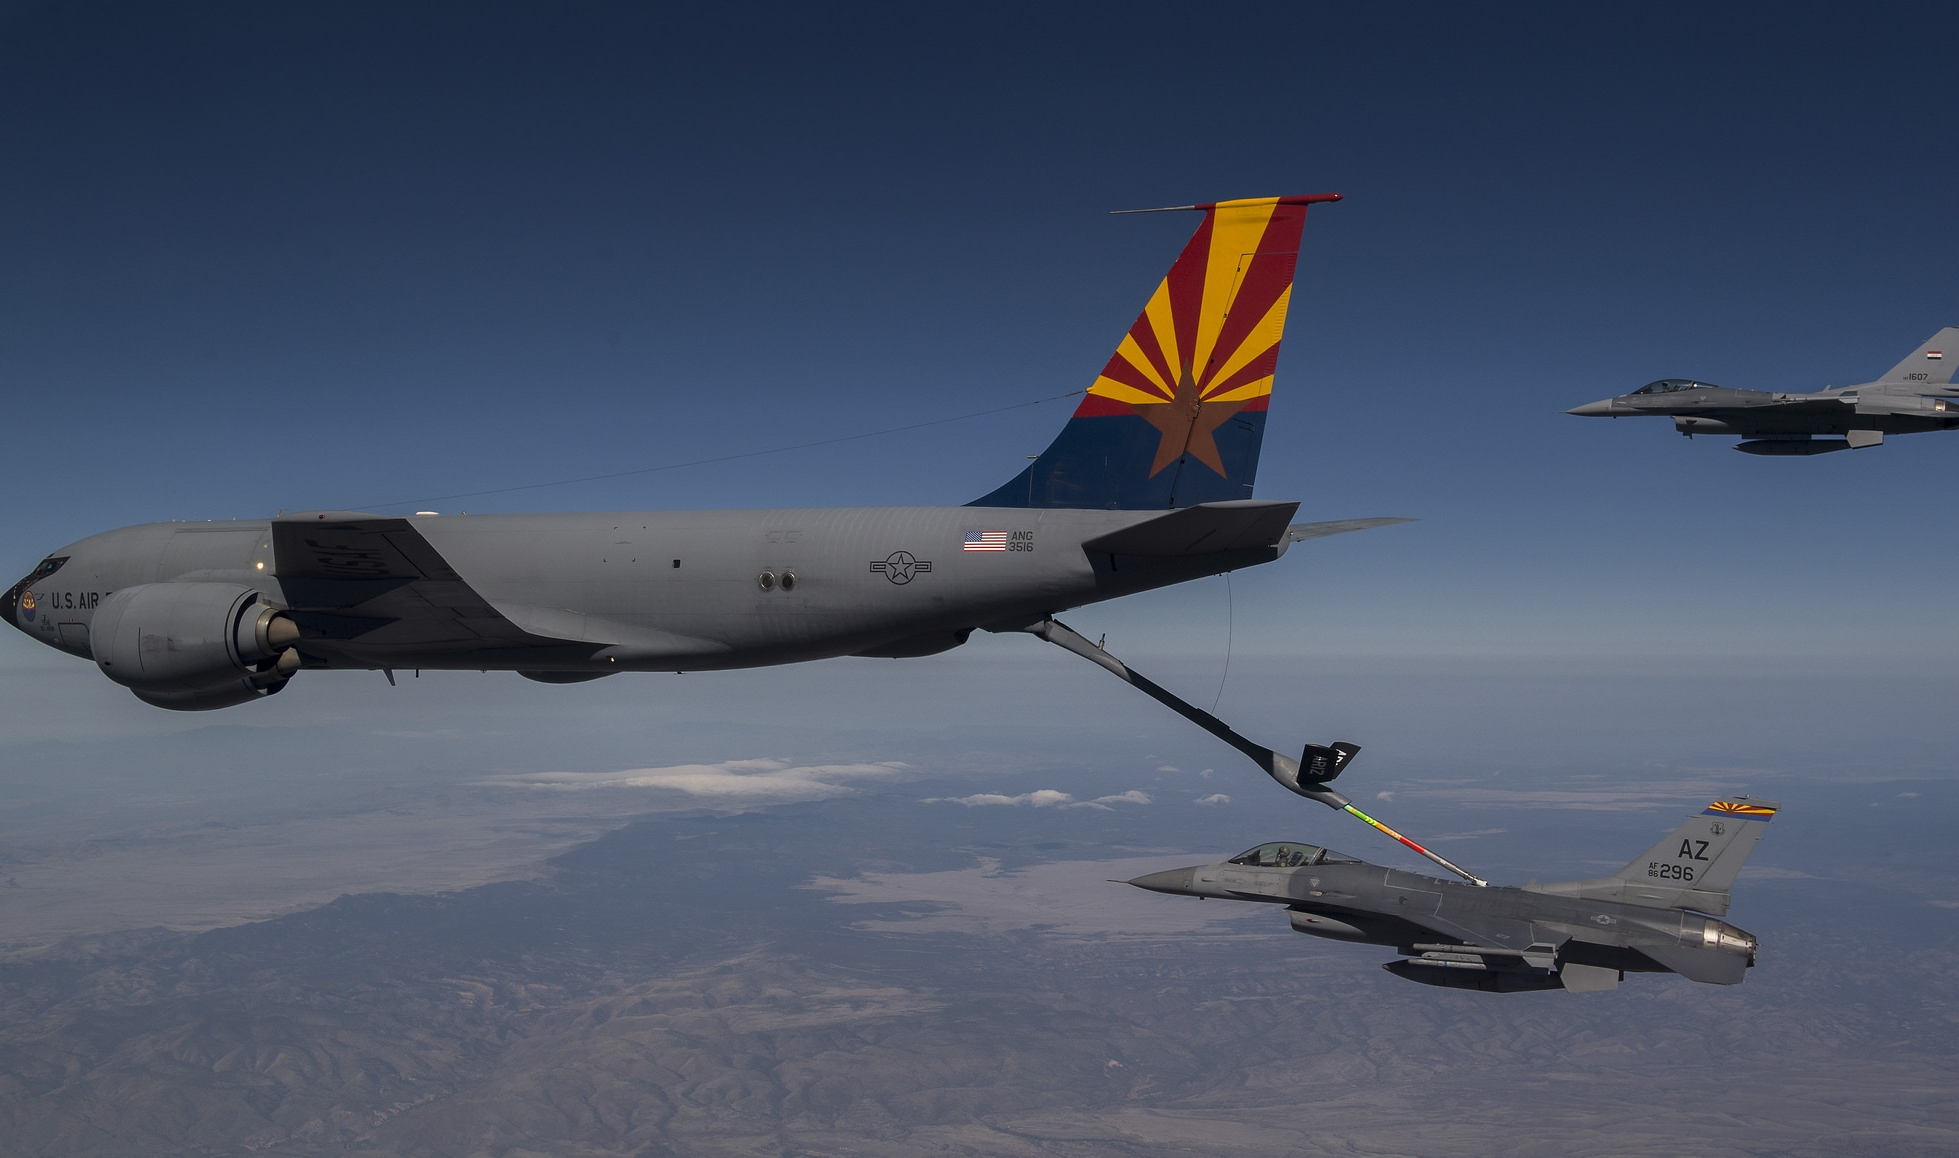 AZANG 161st ARW refueling F-16s from the AZANG 162d Wing